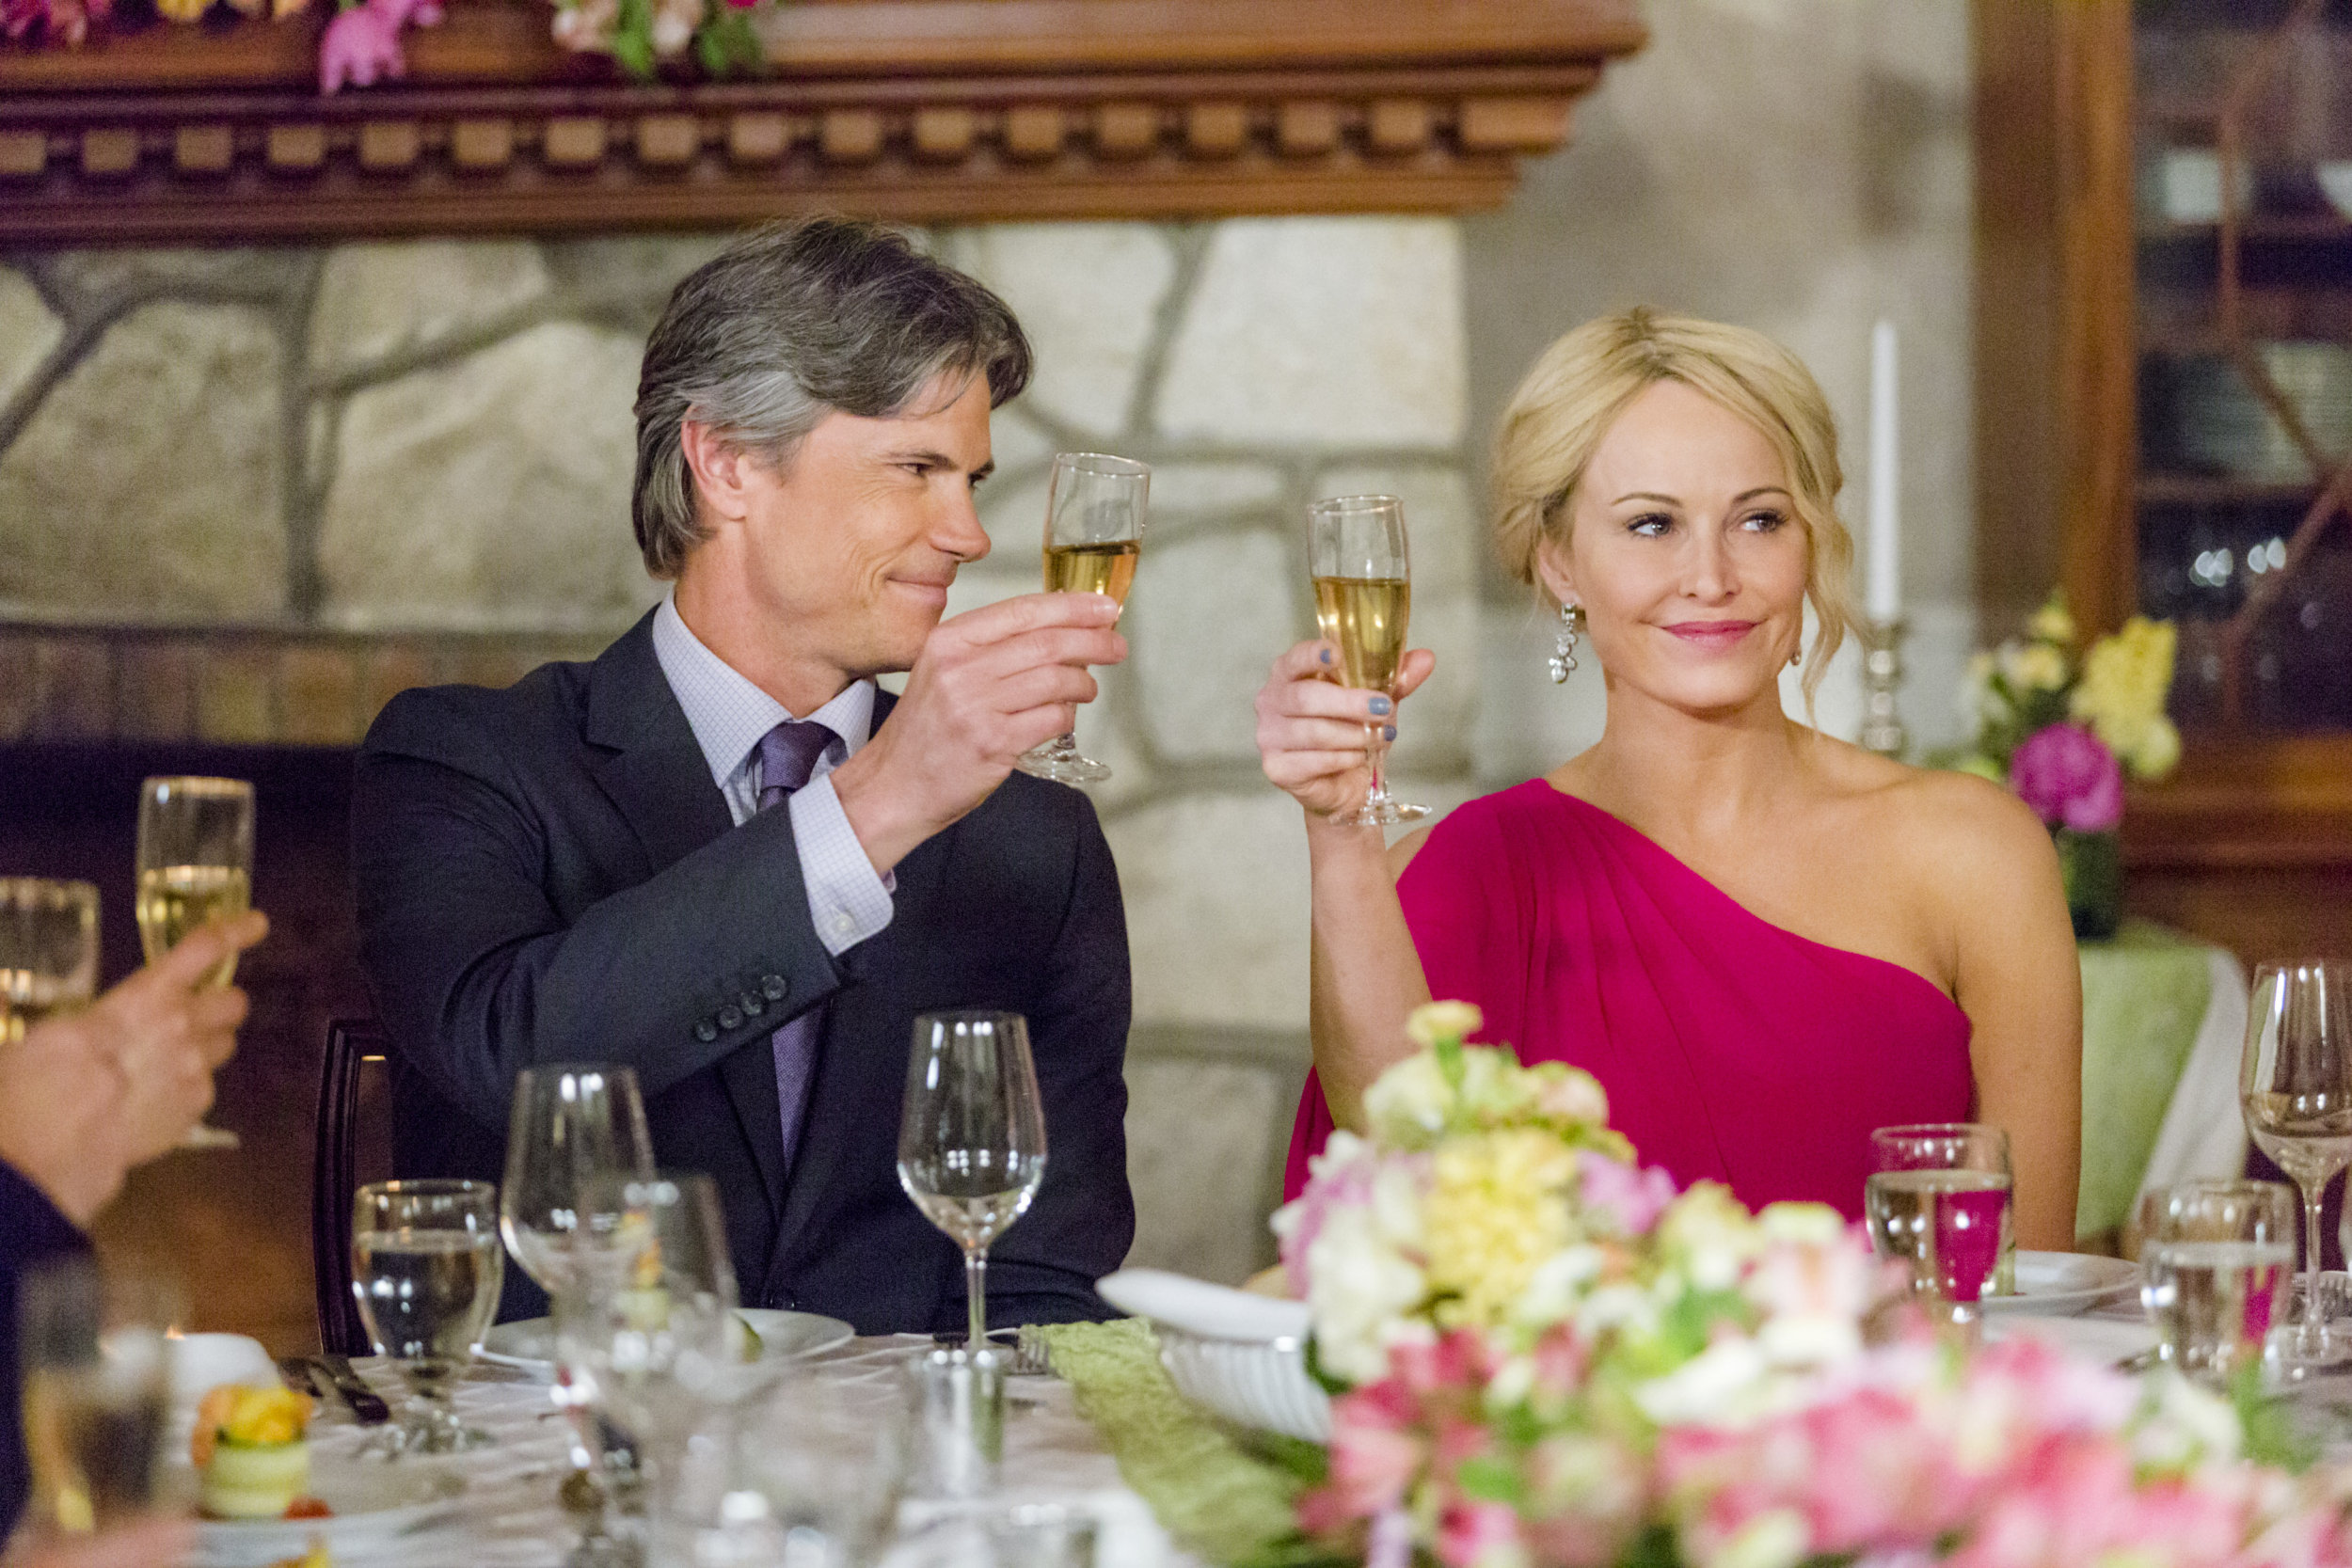 Preview The Wedding March Video Hallmark Channel